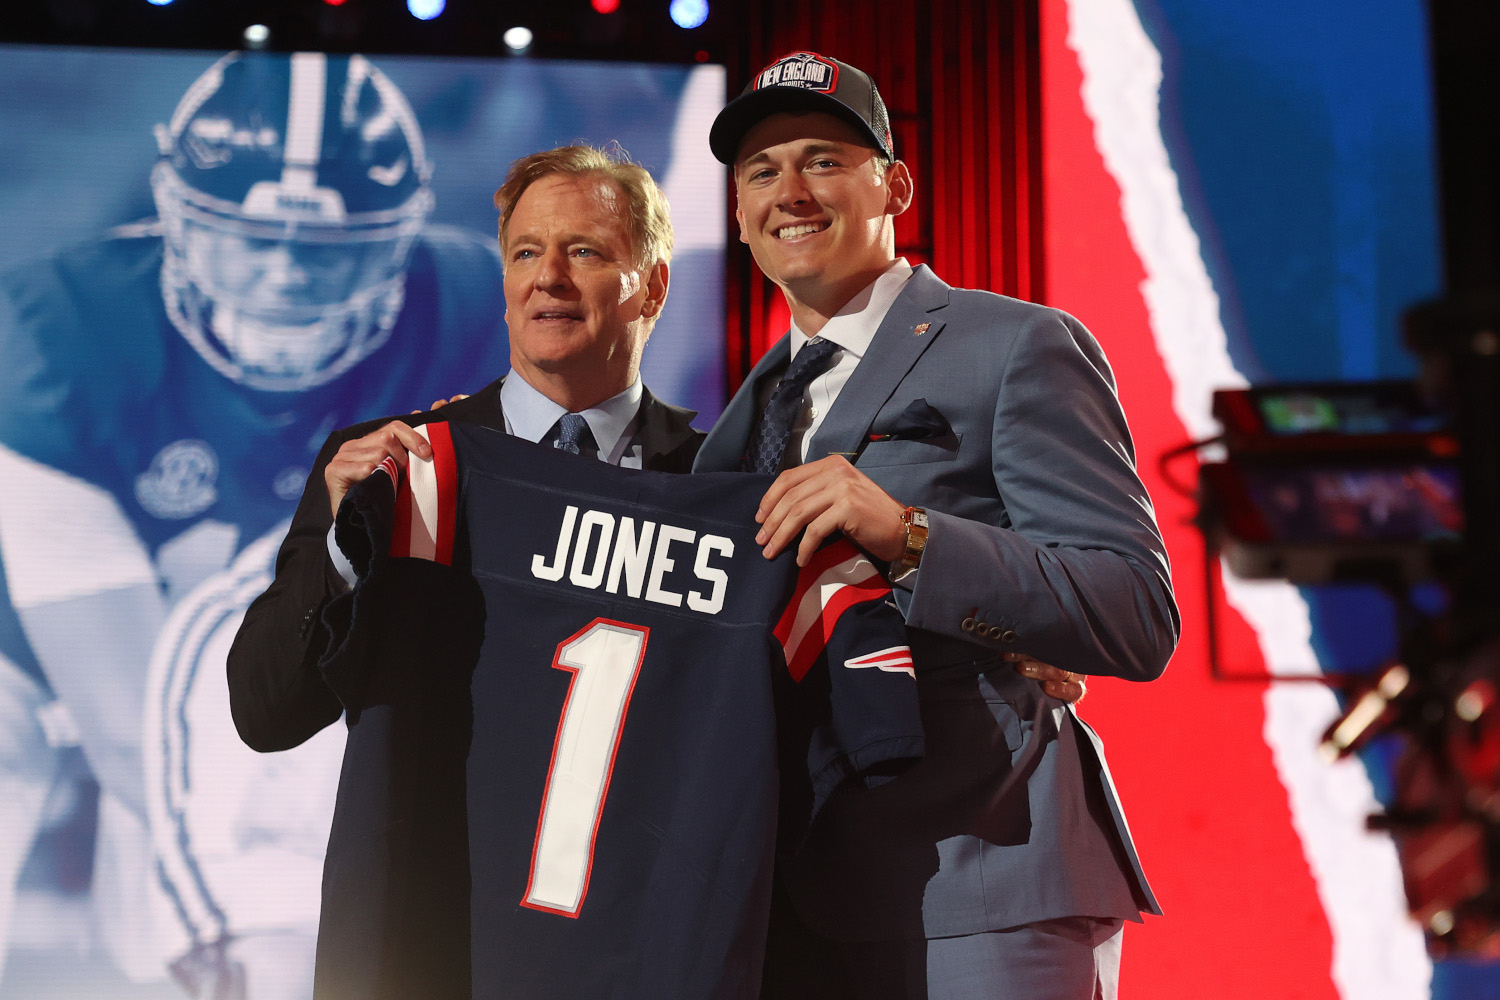 New England Patriots draft pick Mac Jones, selected in the first round by Bill Belichick